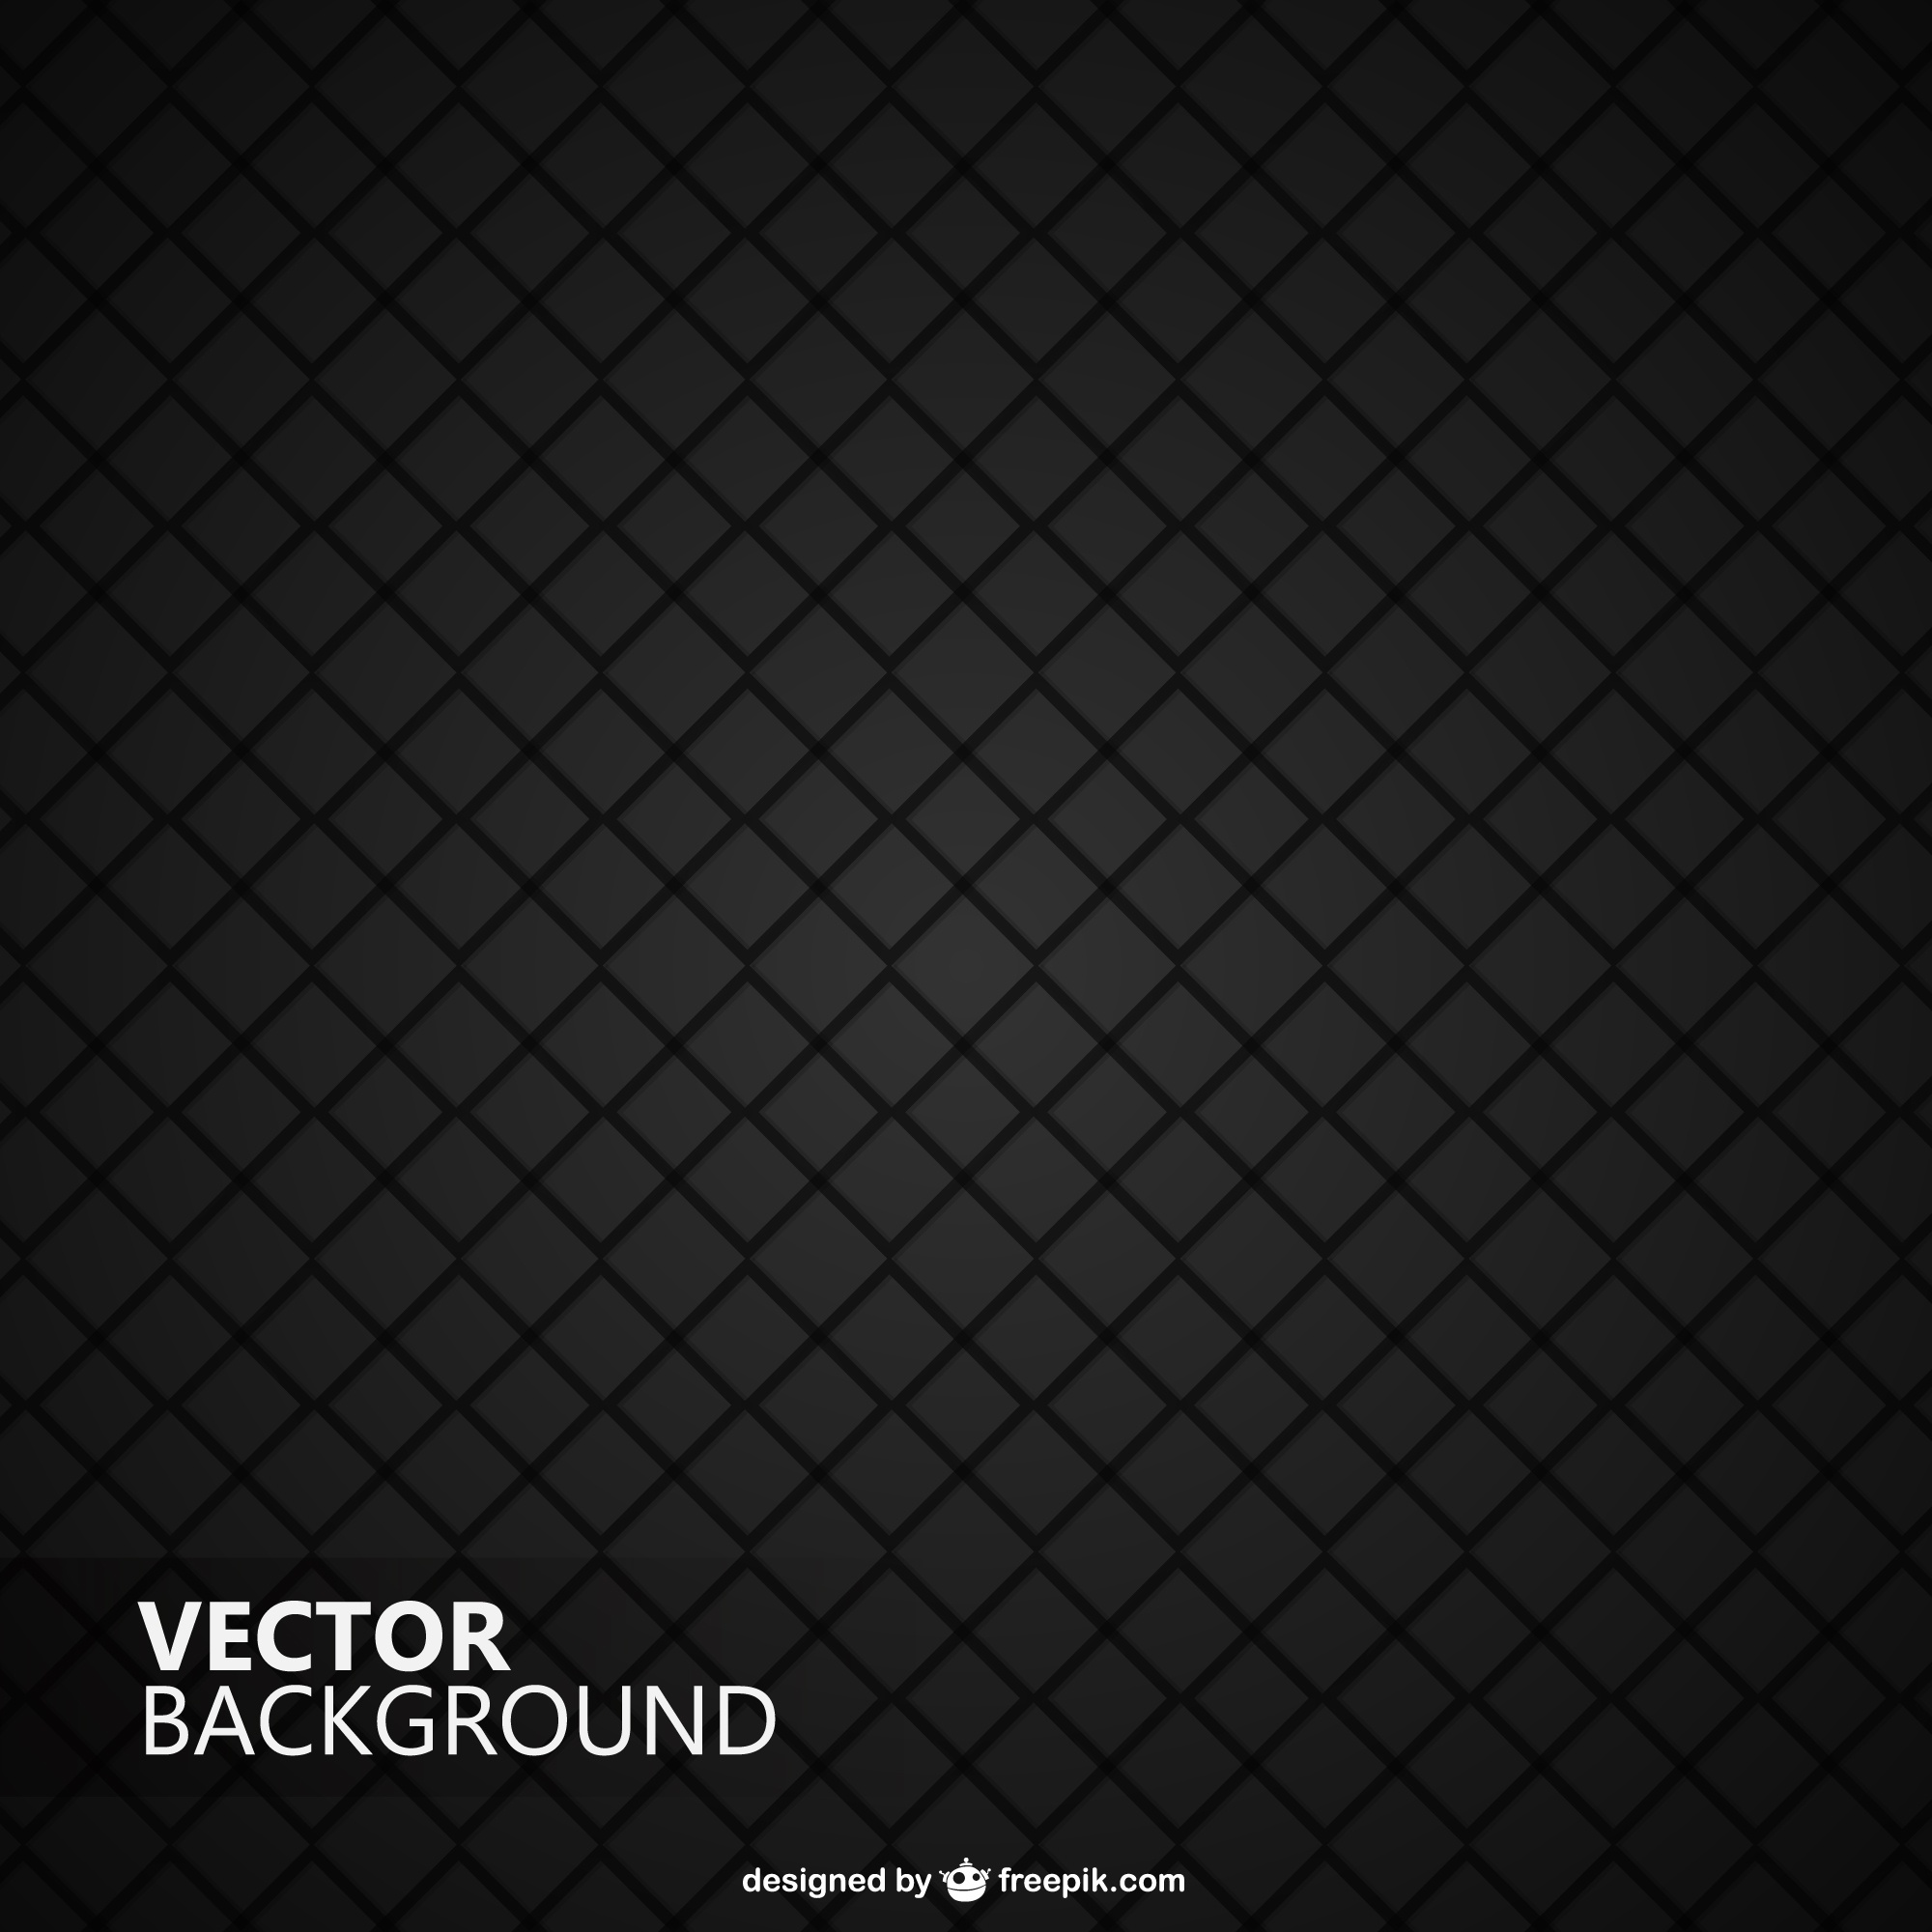 Dark vector background